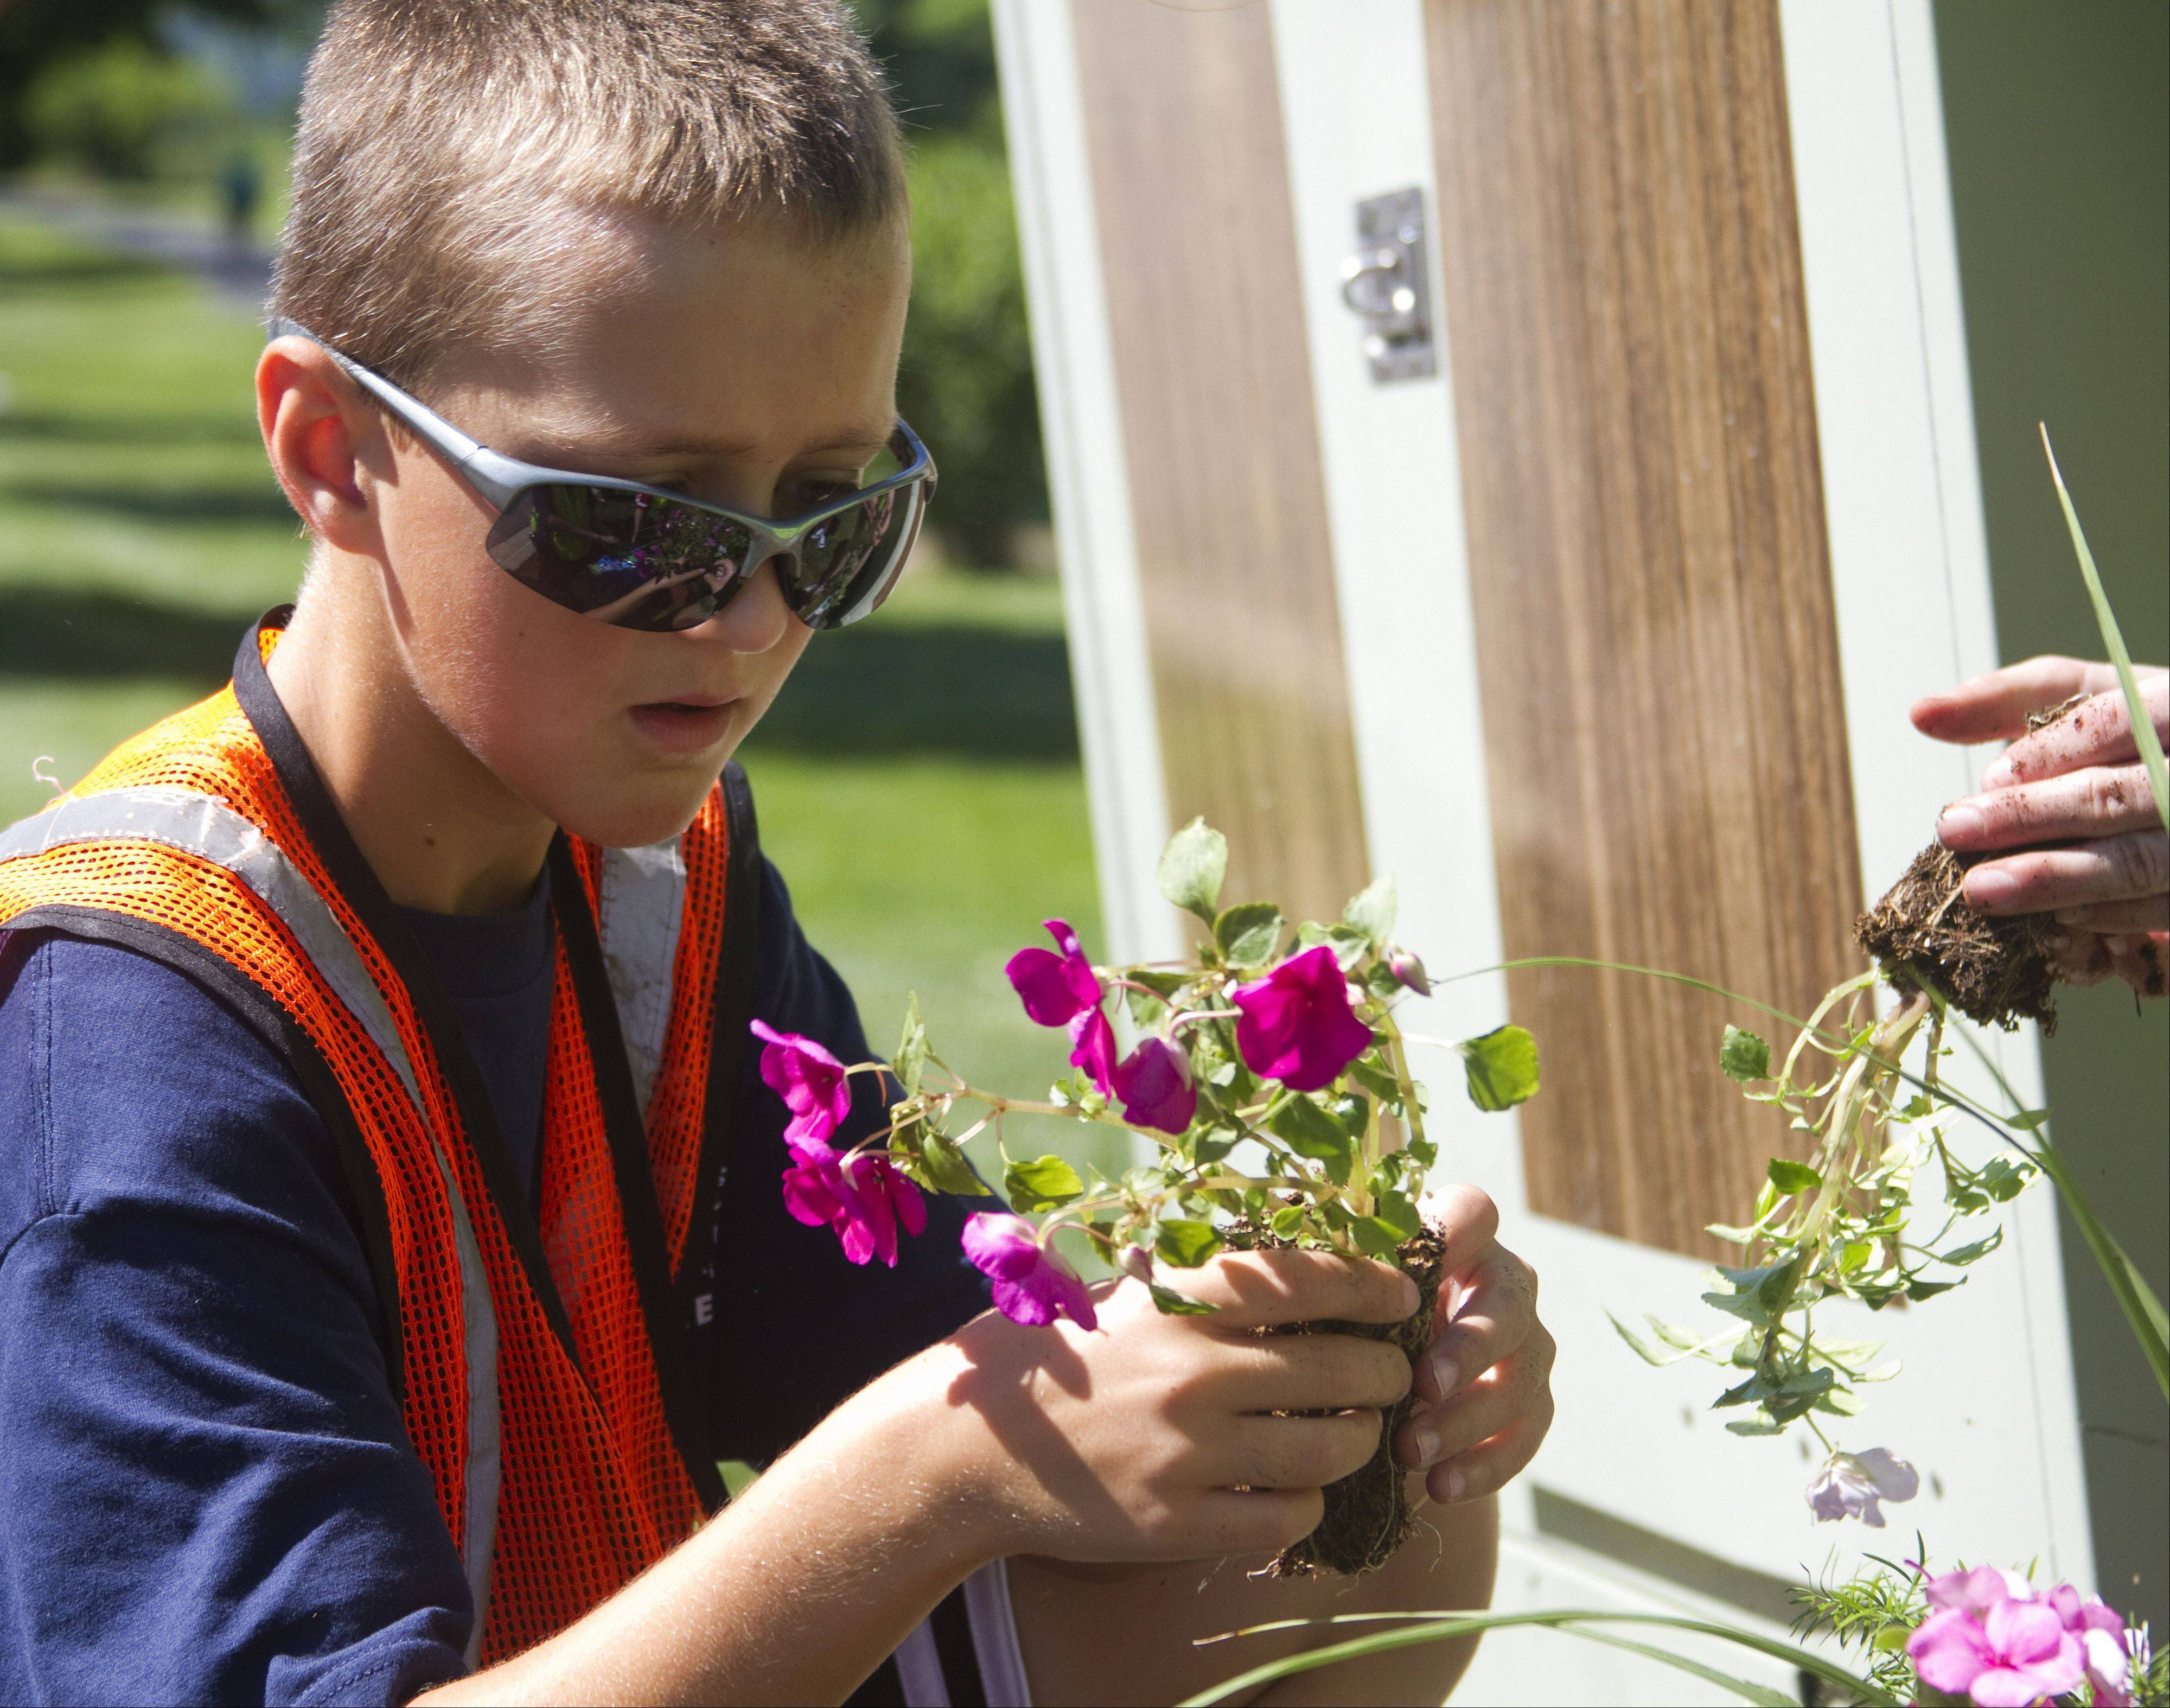 Jack Mallett, 11, of Naperville, helps plant flowers and ferns Friday at Wildflower Park in Naperville. He participated in a weeklong volunteer camp that introduced middle school students to community service.